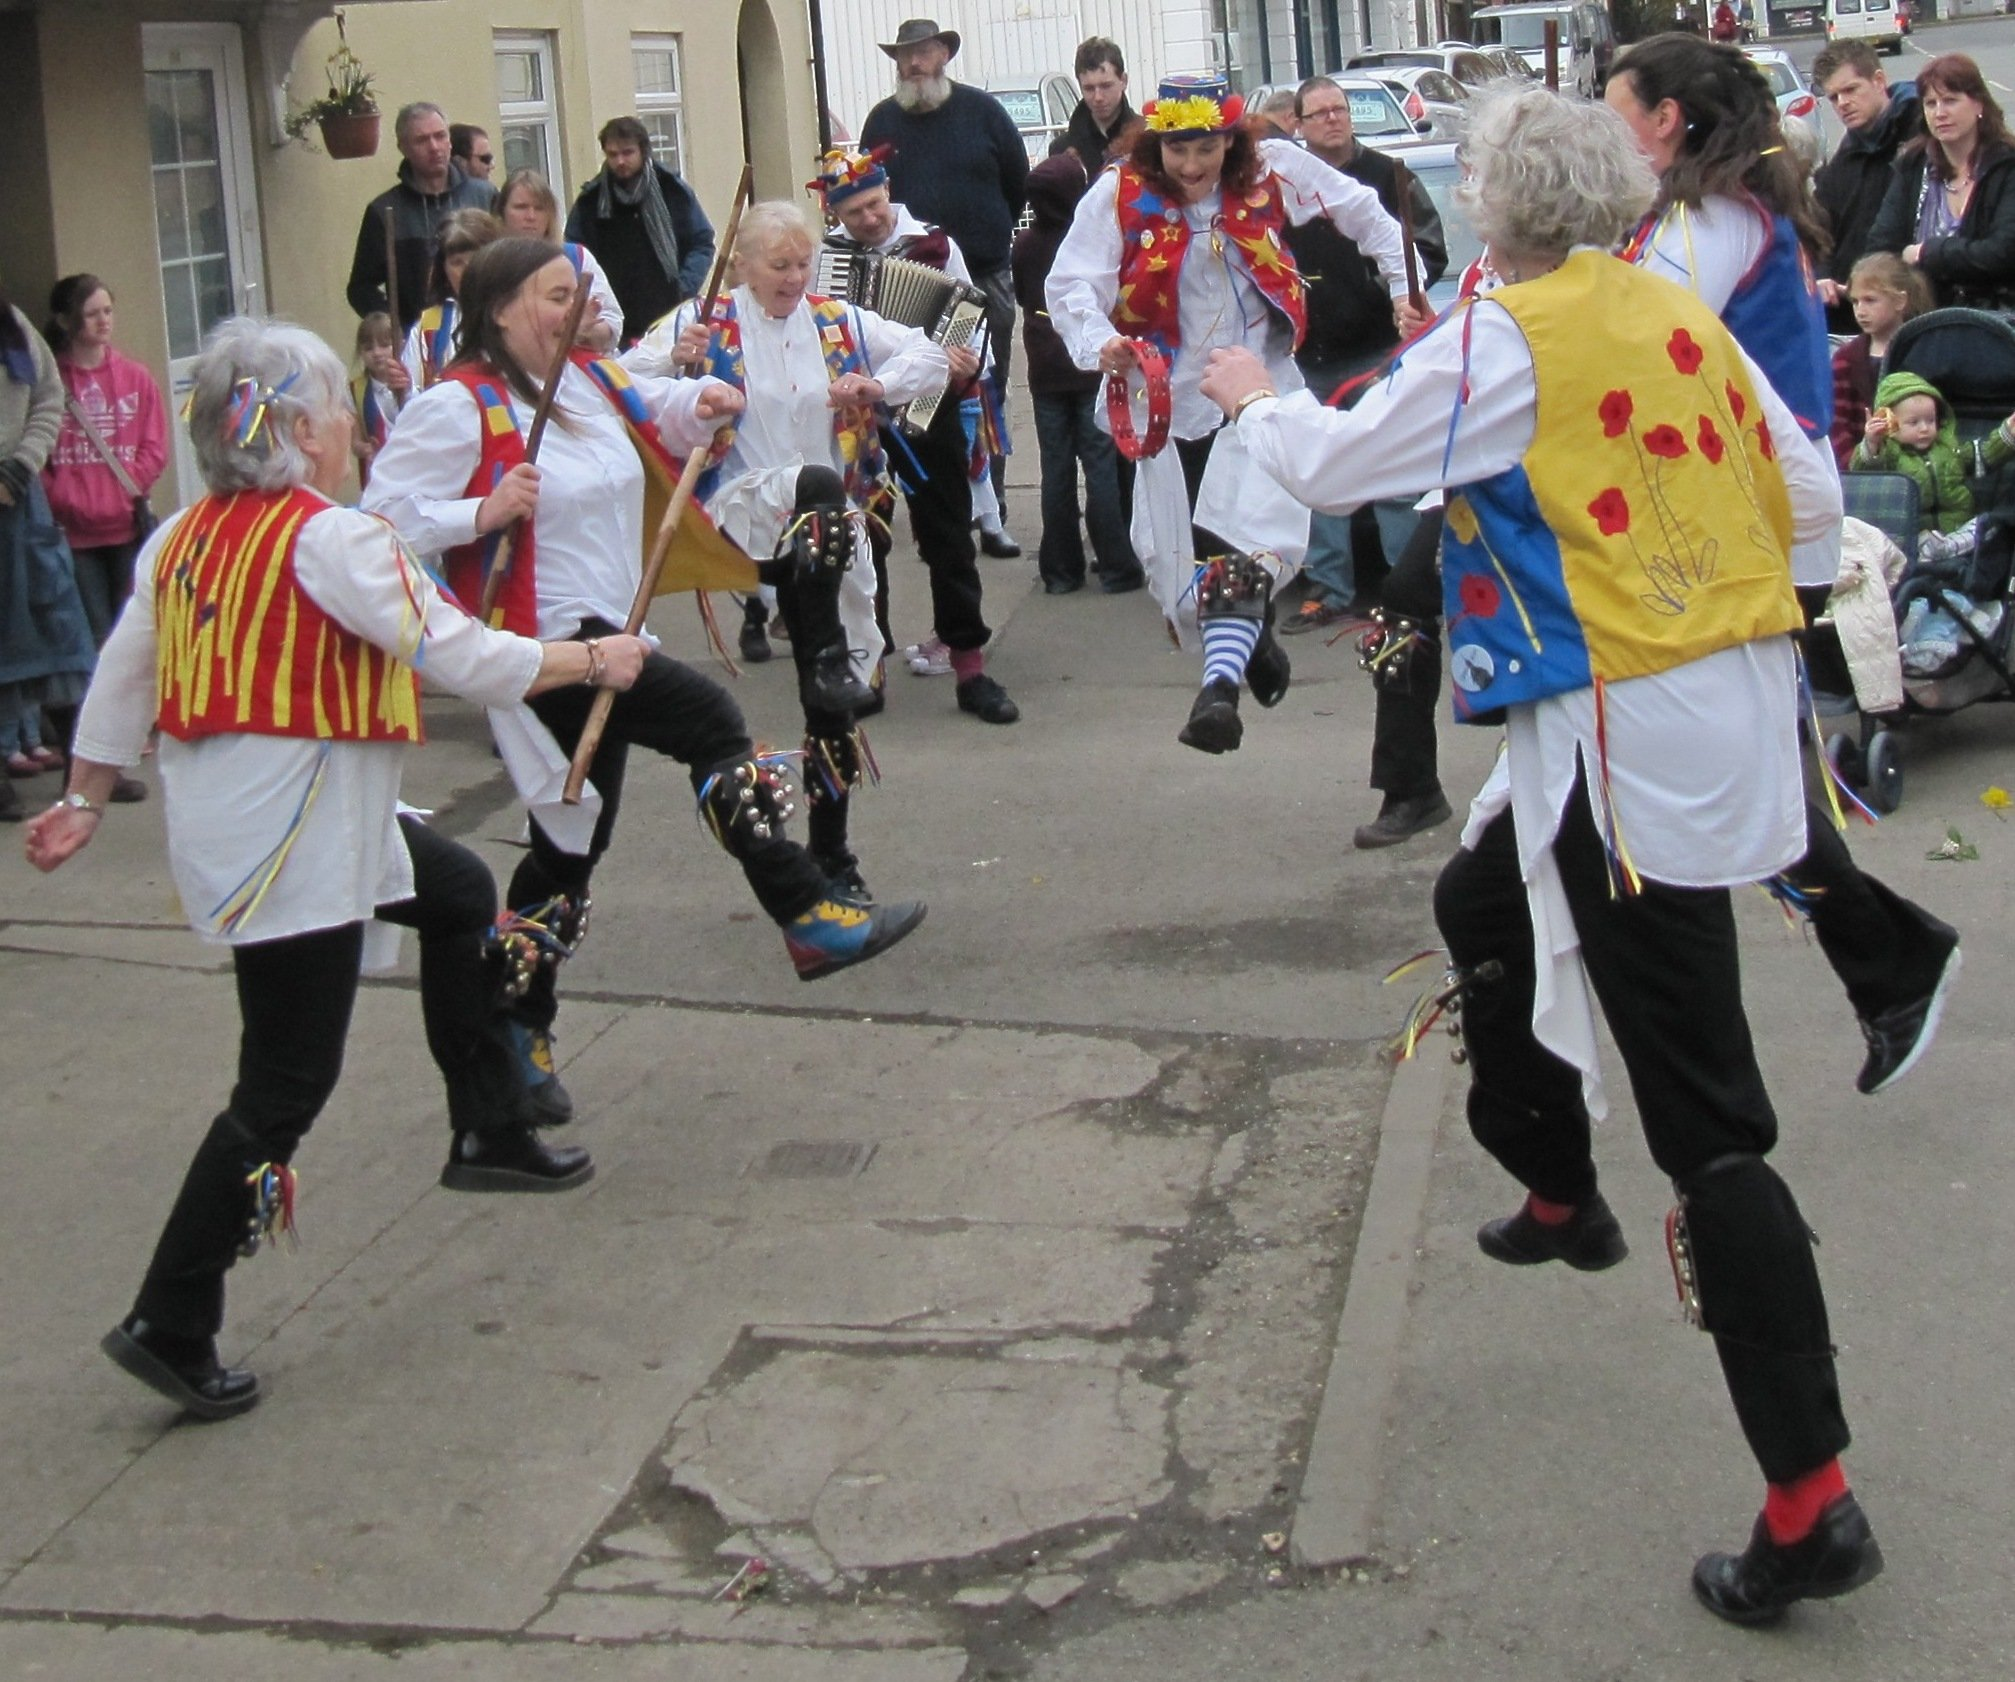 Jenny Pipes Morris in full leaping mode!